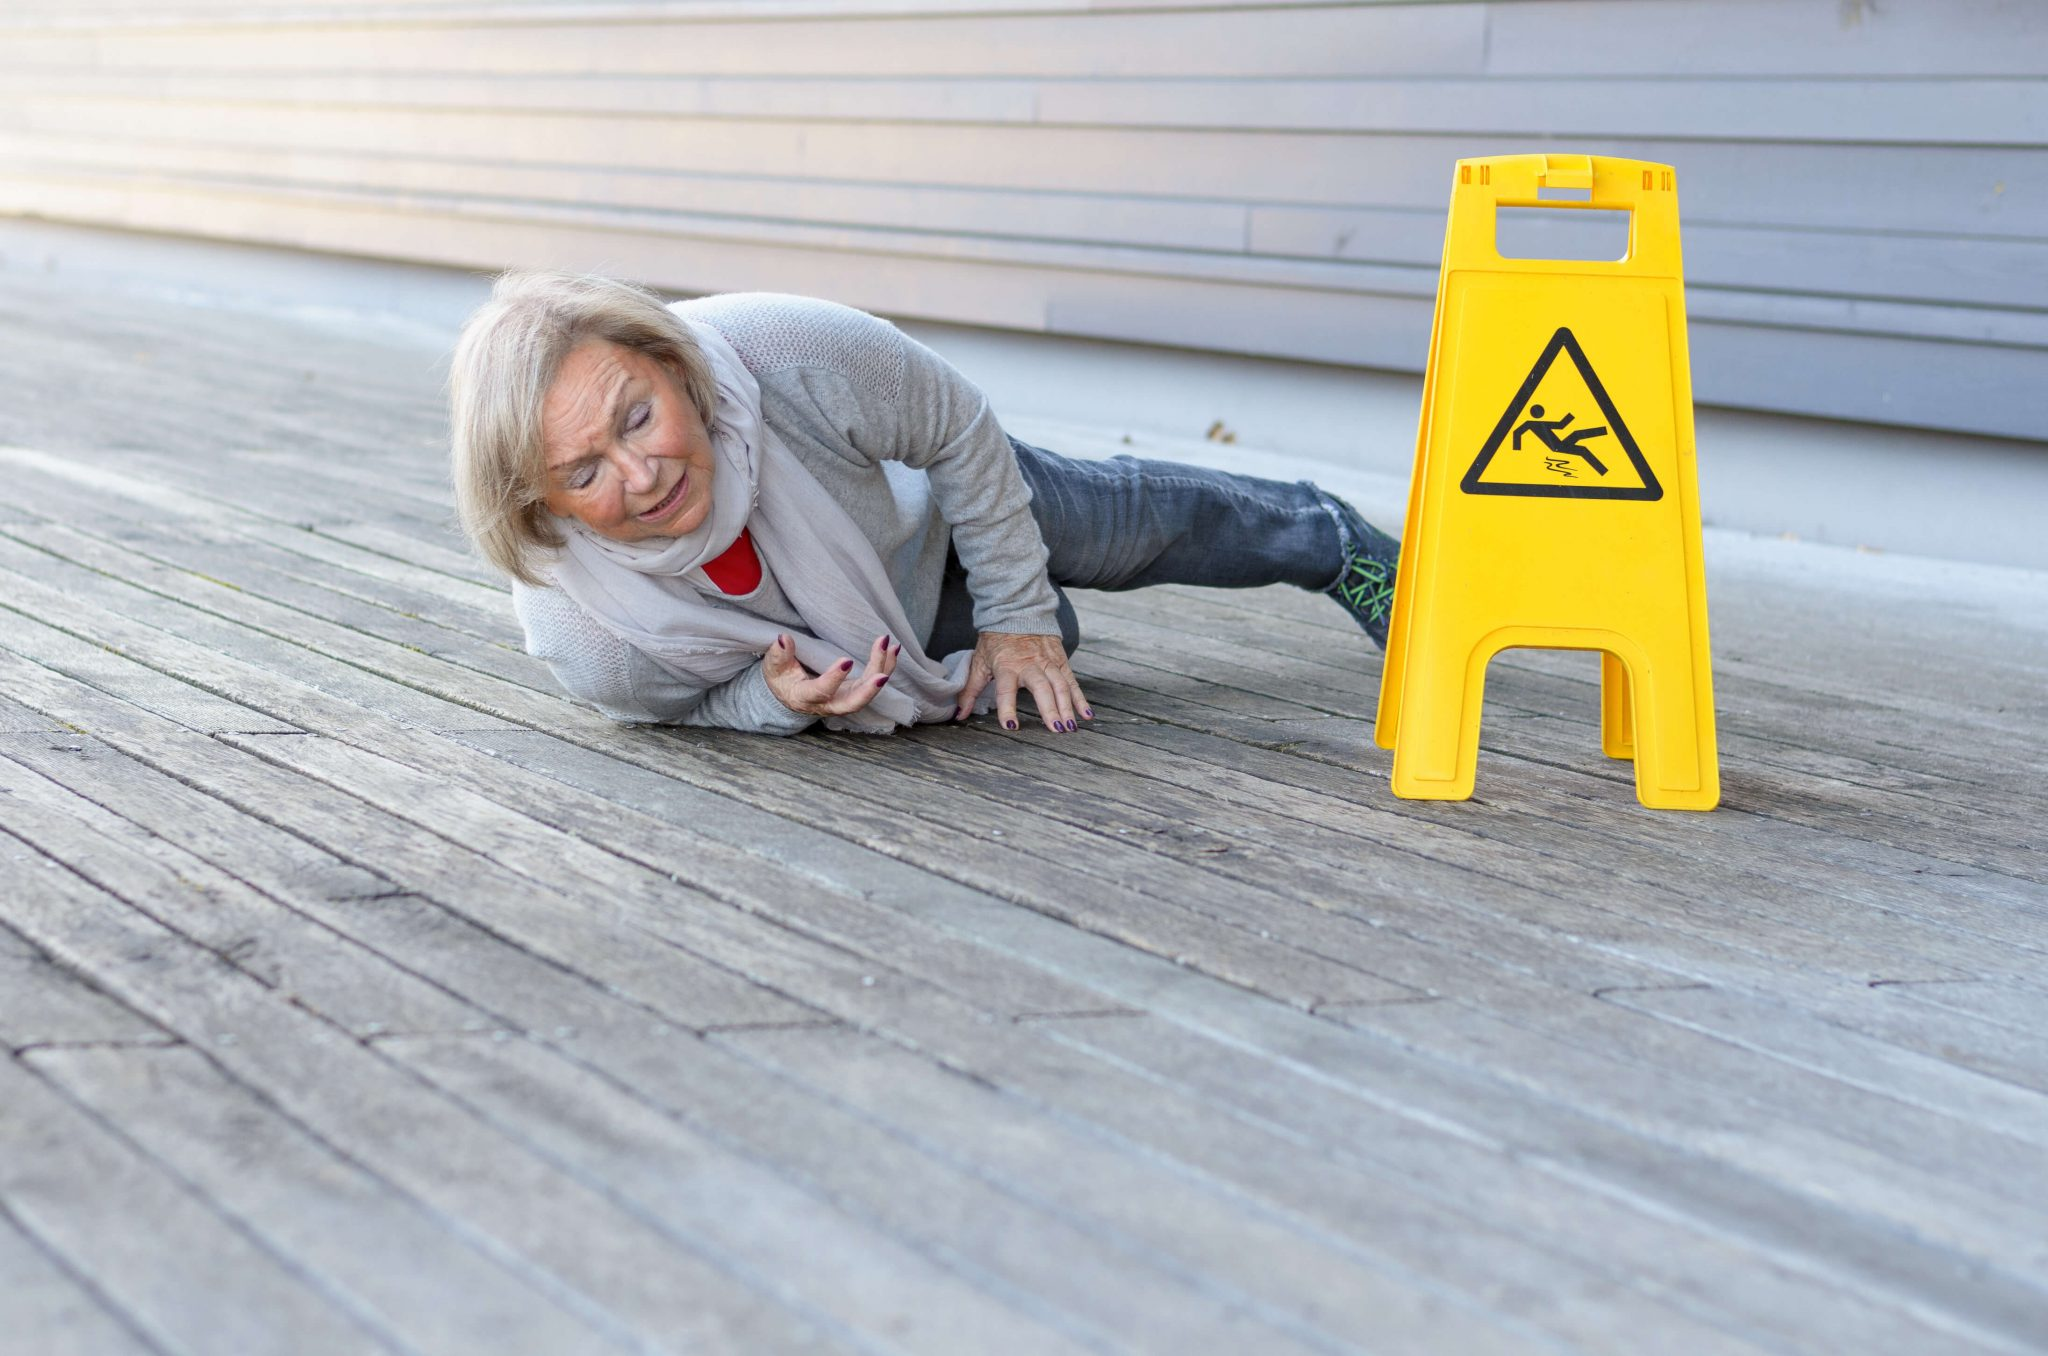 Picture of a Lady Slipping and Falling on a Wet Floor